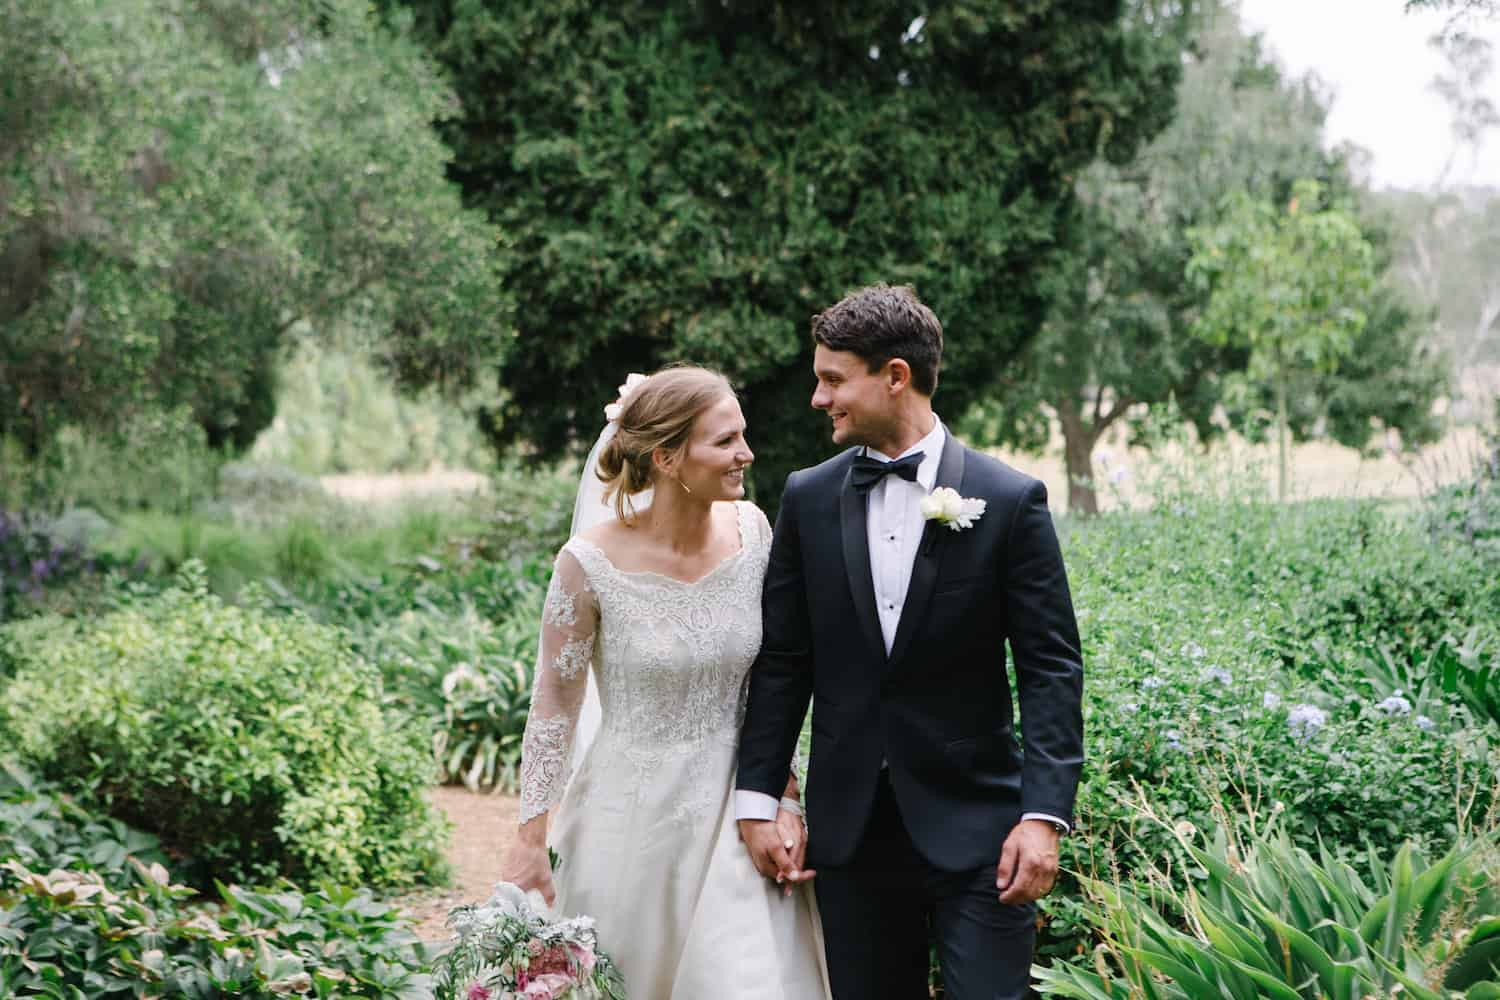 Killeen Station Barn Wedding Melbourne Mia and Brents Wedding Madeleine Chiller Photography